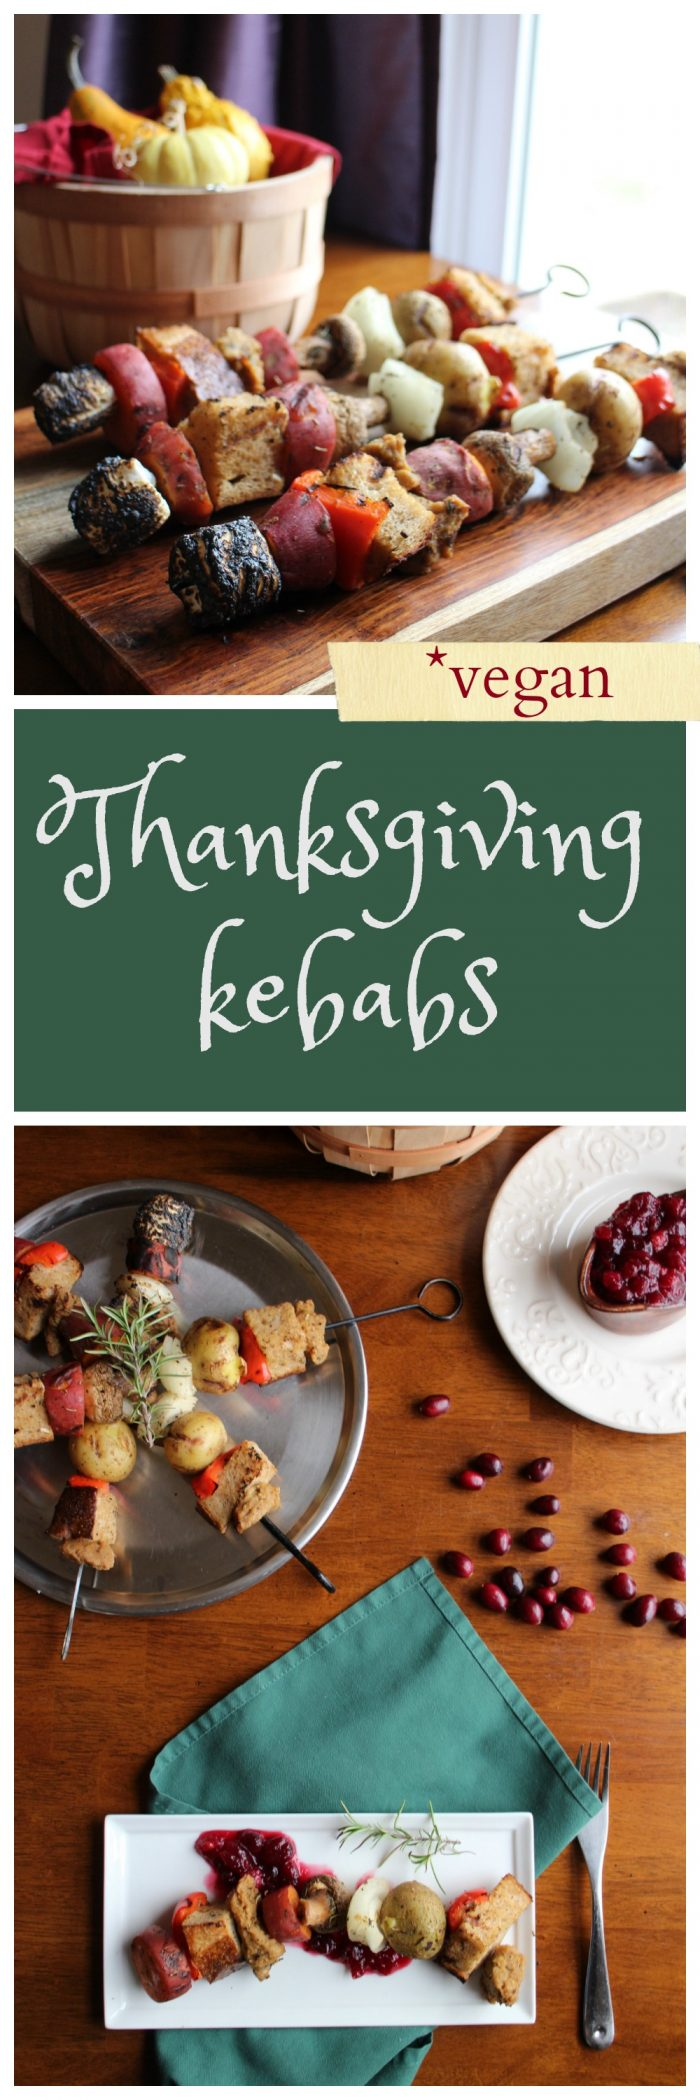 Venture outside your boring holiday meals with these grilled Thanksgiving kebabs. This vegan entree has all of your Thanksgiving favorites in deconstructed form. Potatoes, stuffing, seitan, and even sweet potatoes with marshmallows. Vegan.   cadryskitchen.com